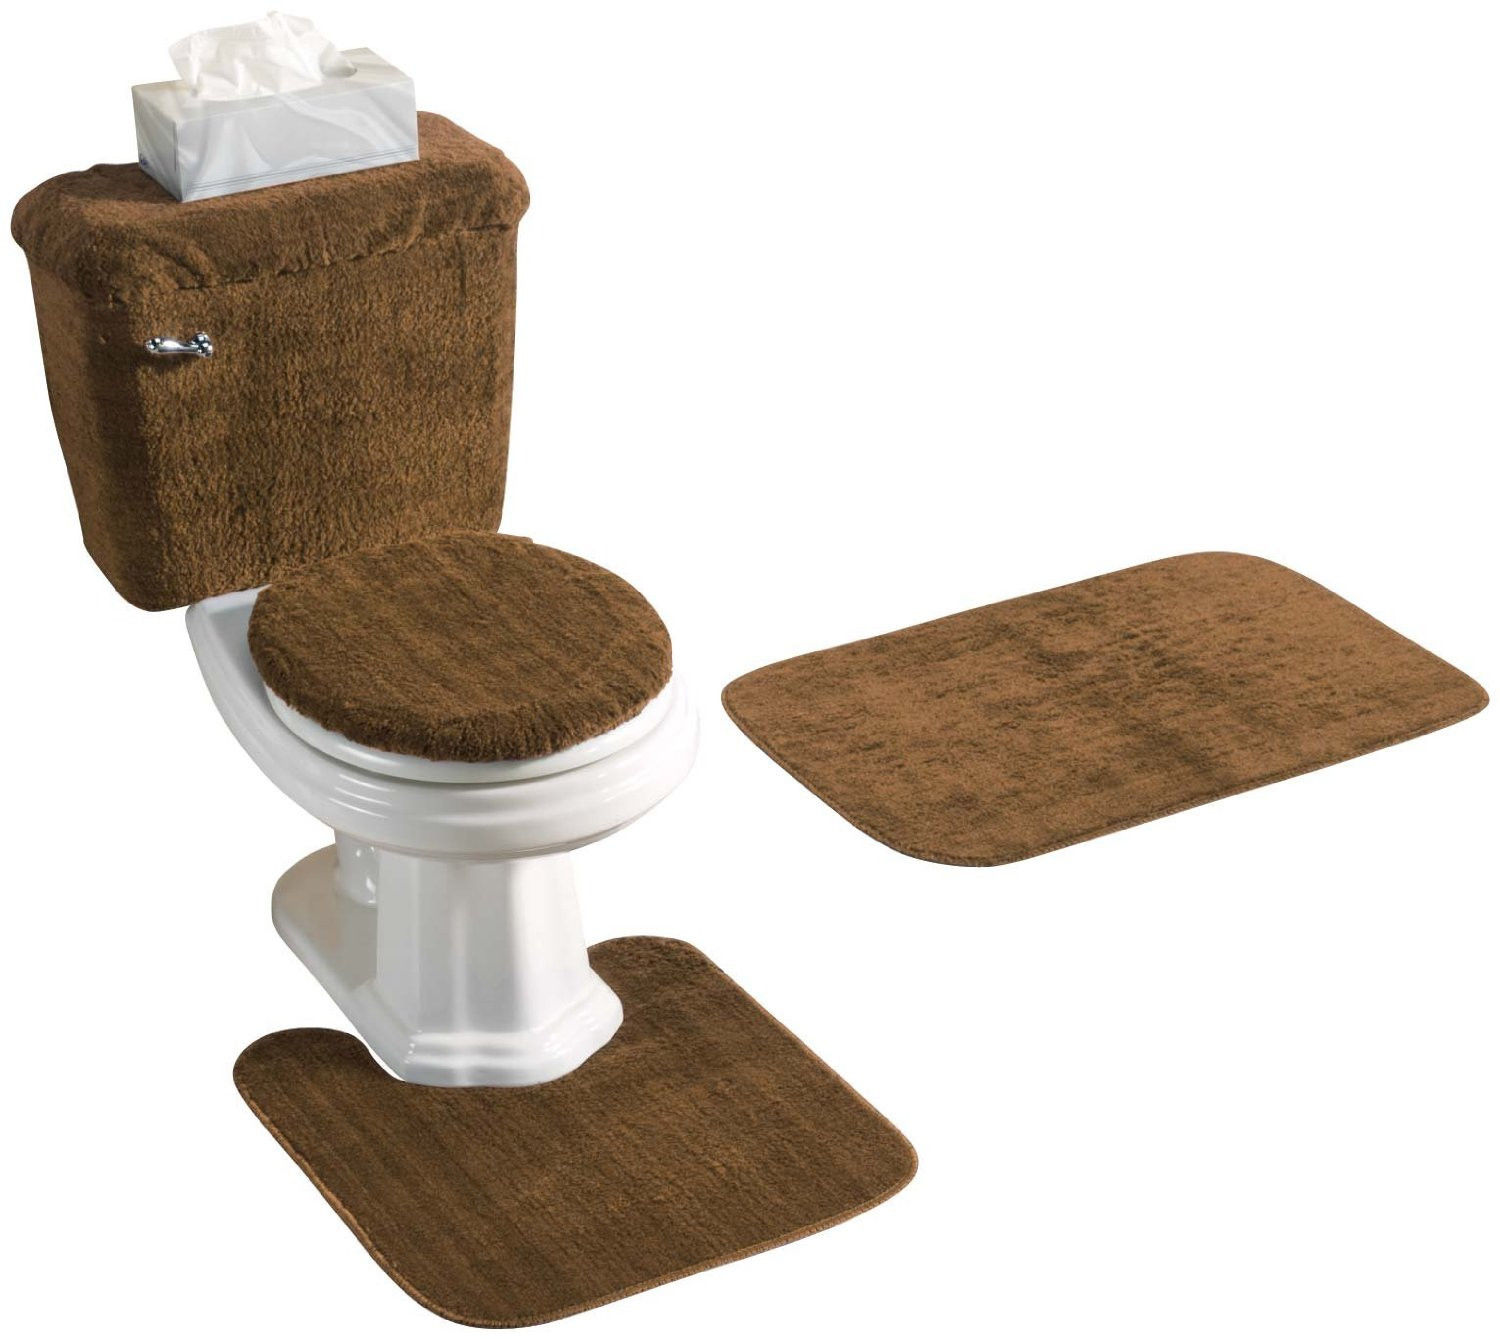 5 piece bath rug contour lid tank lid tank cover set brown walmartcom - Bathroom Rug Sets